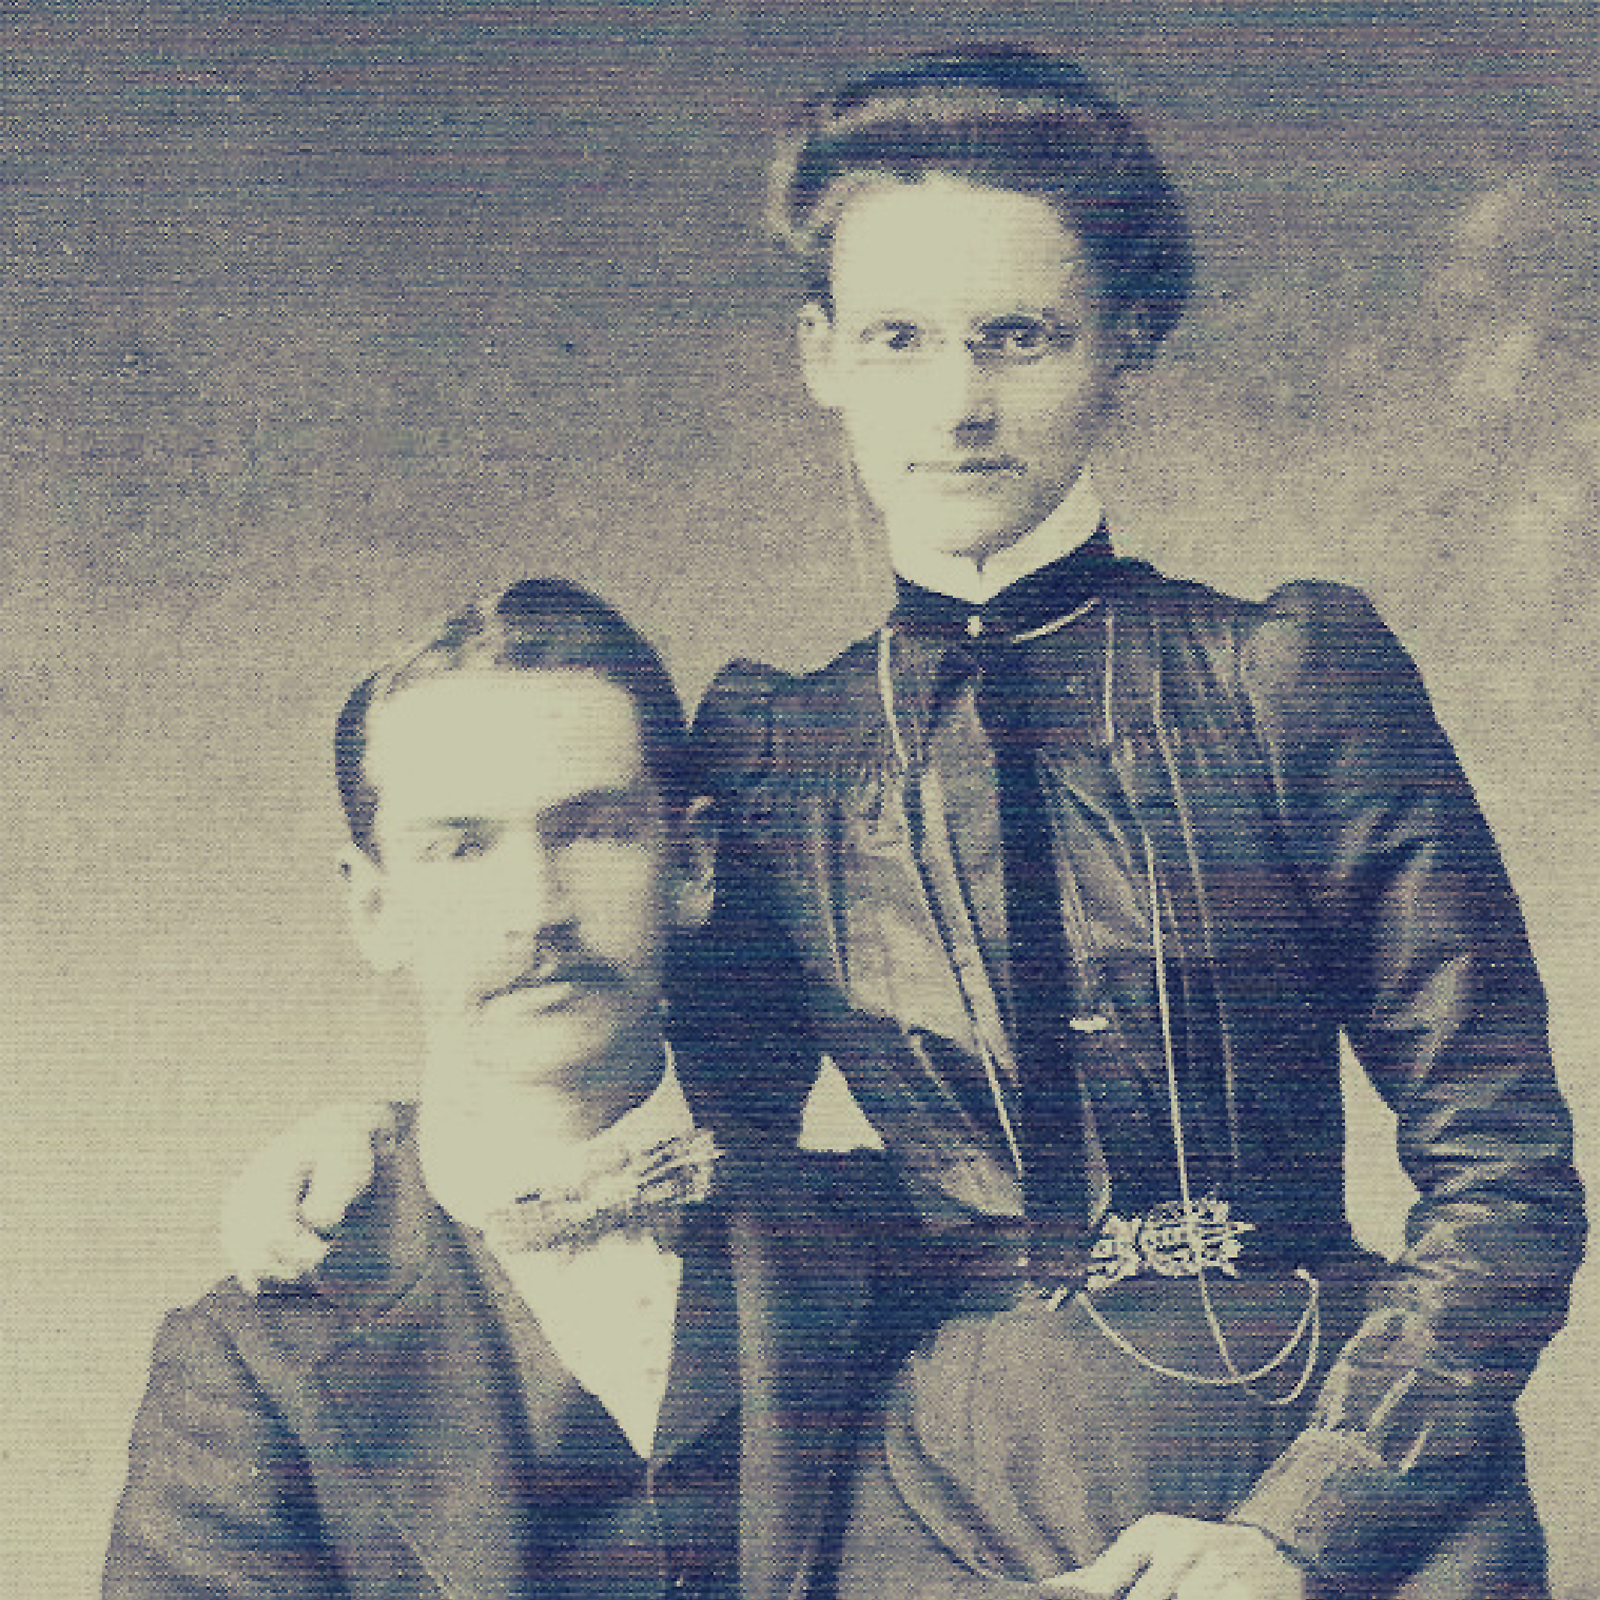 Glenn Curtiss married Lena Pearl Neff on March 7, 1898, a sawmill superintendent's daughter. She was his closest confidant and friend.